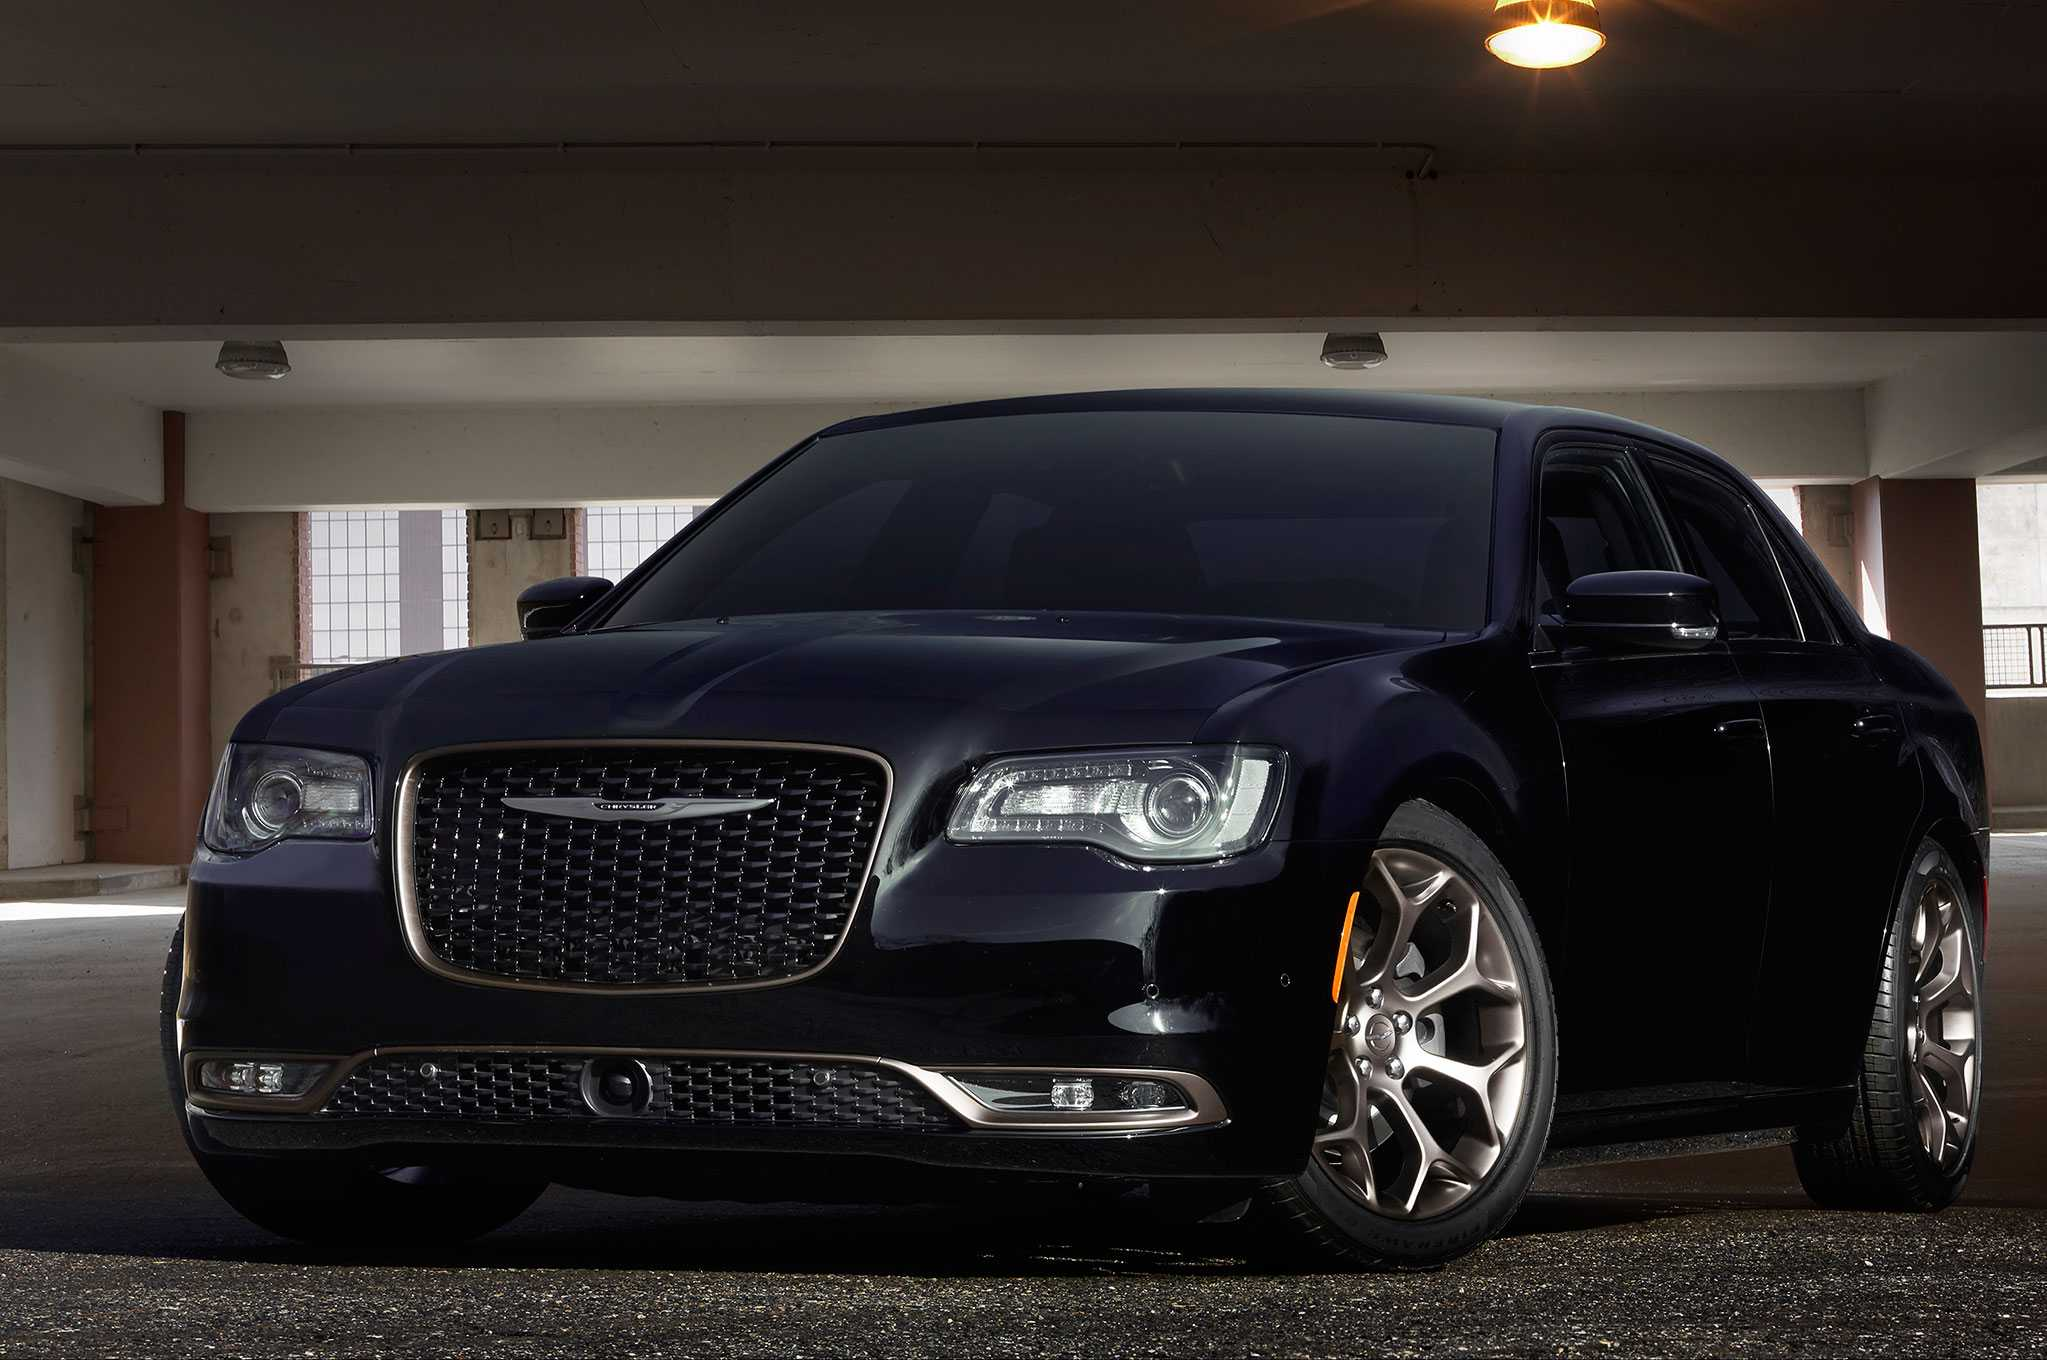 Chrysler 300 Is Planning To Adopt Pacifica Architecture With Next